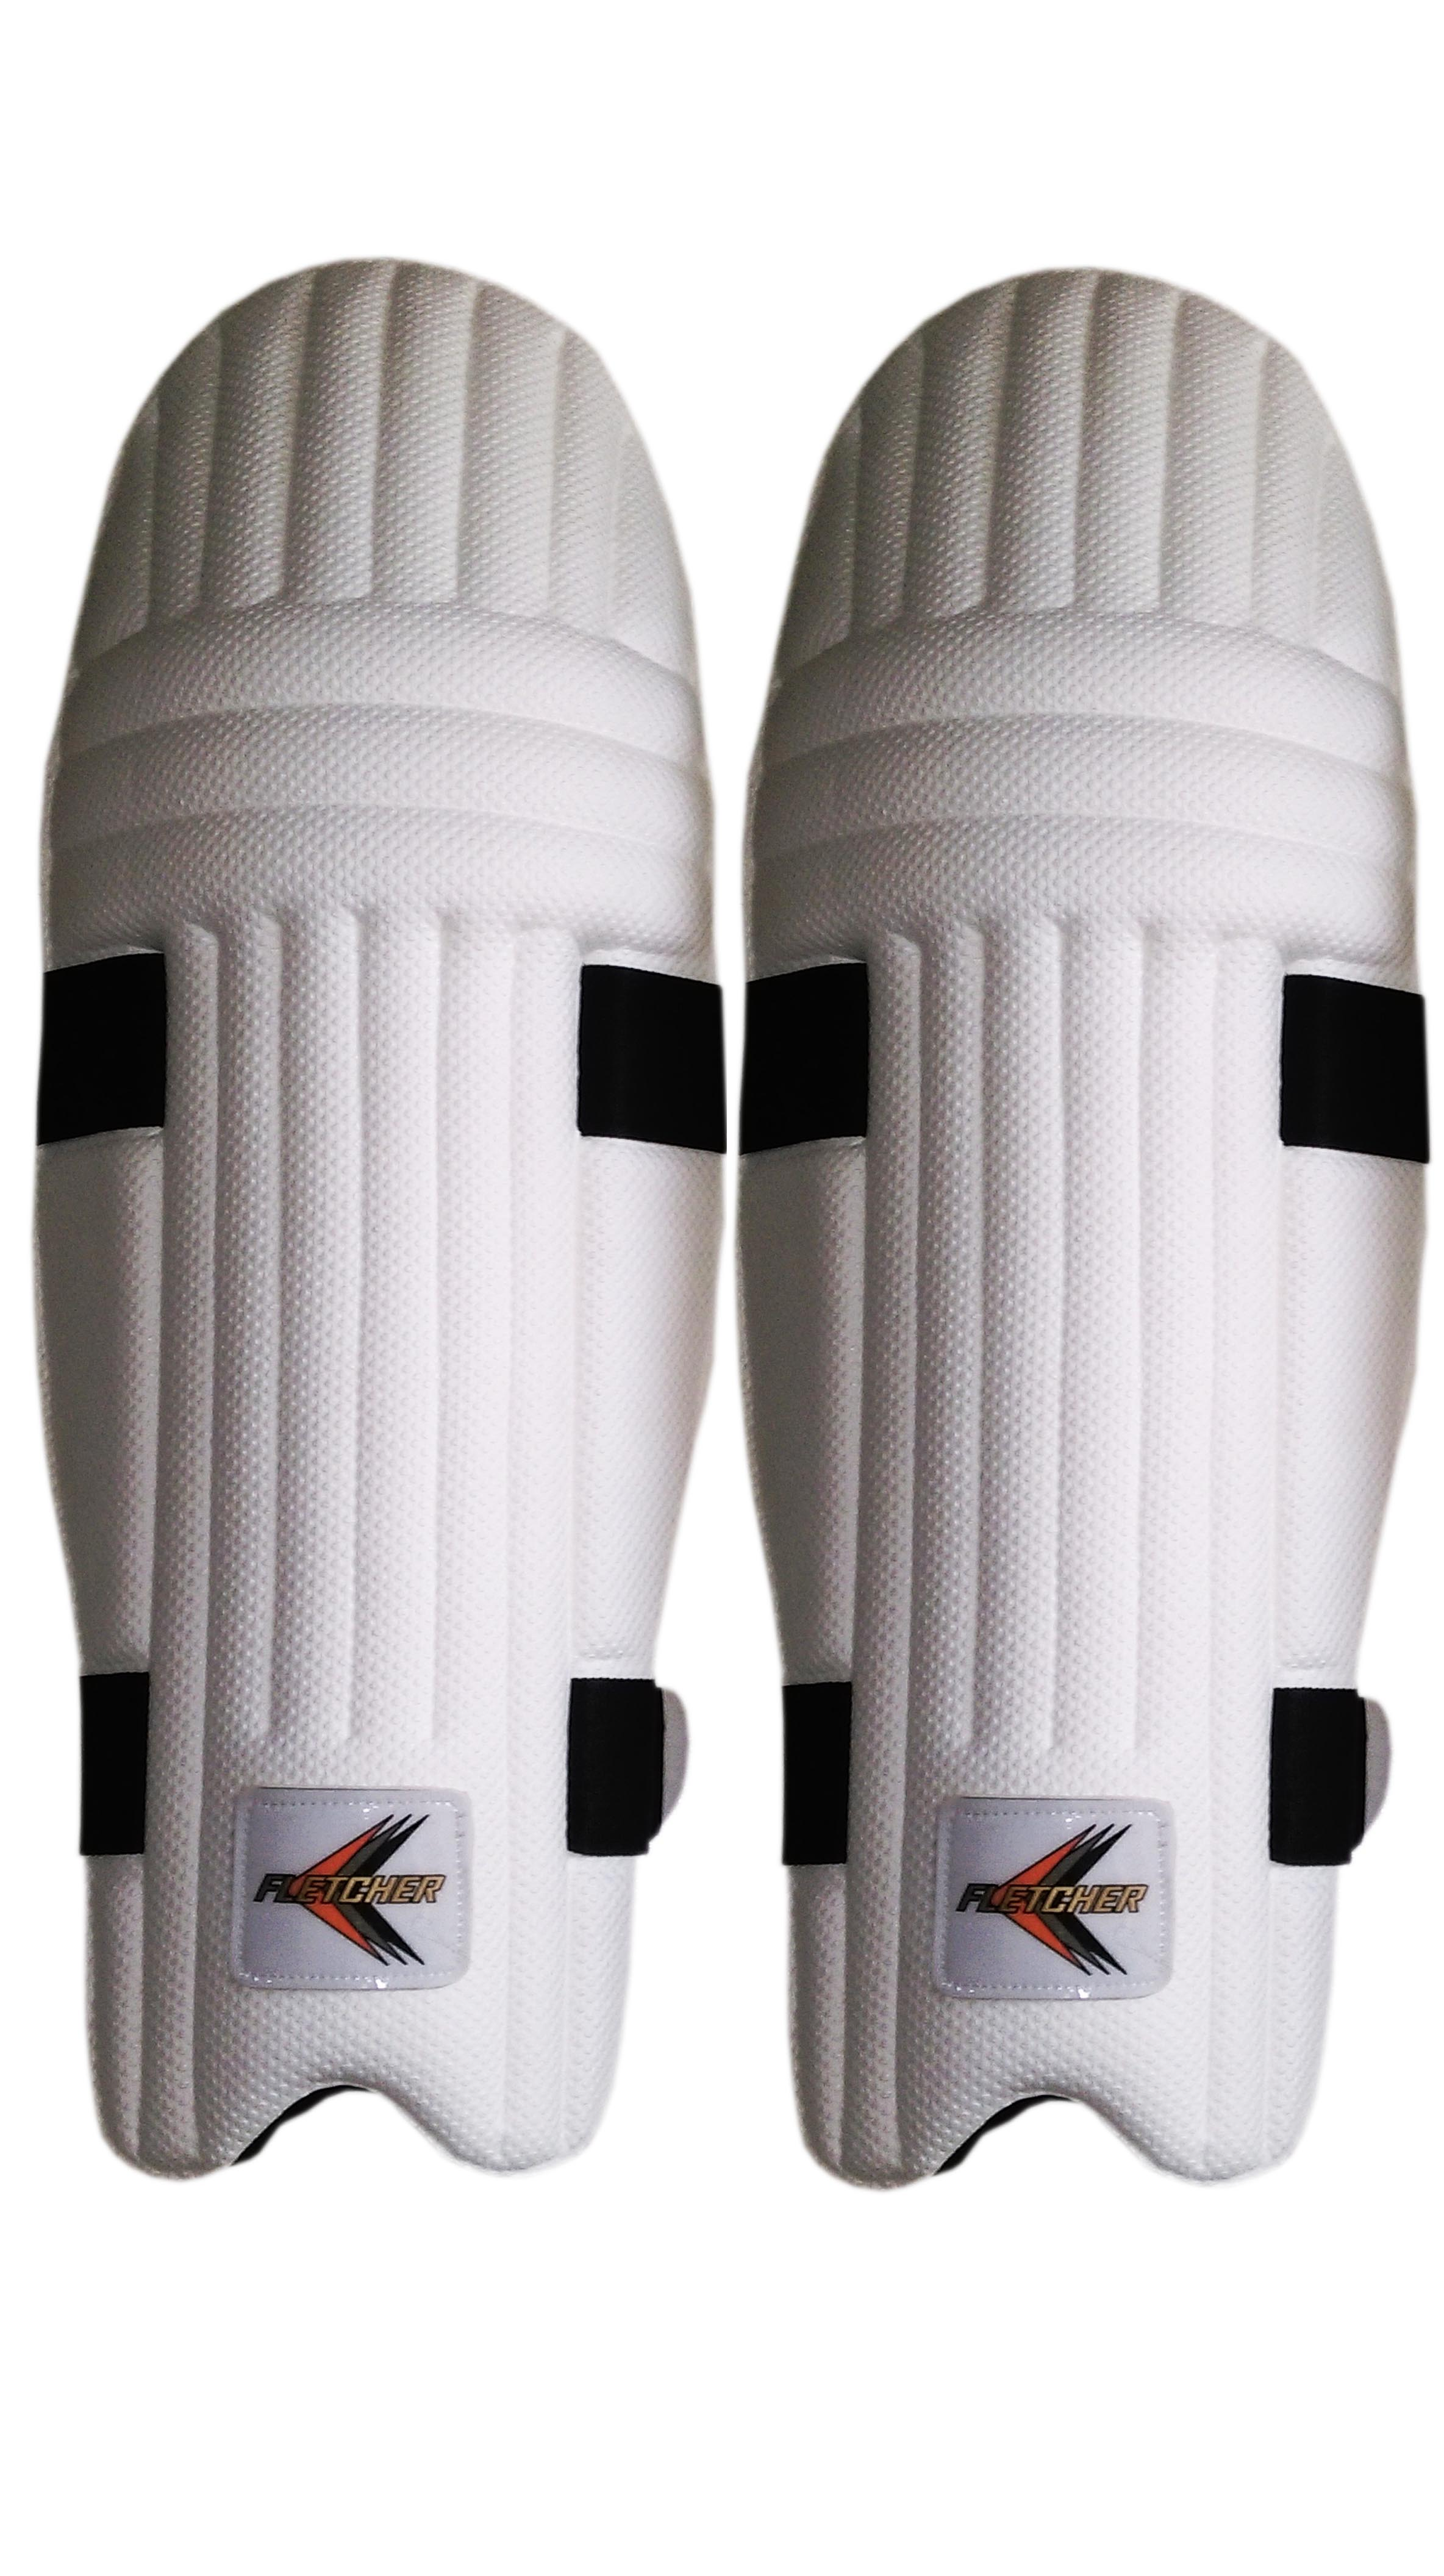 Test Wicket Keeping Pads